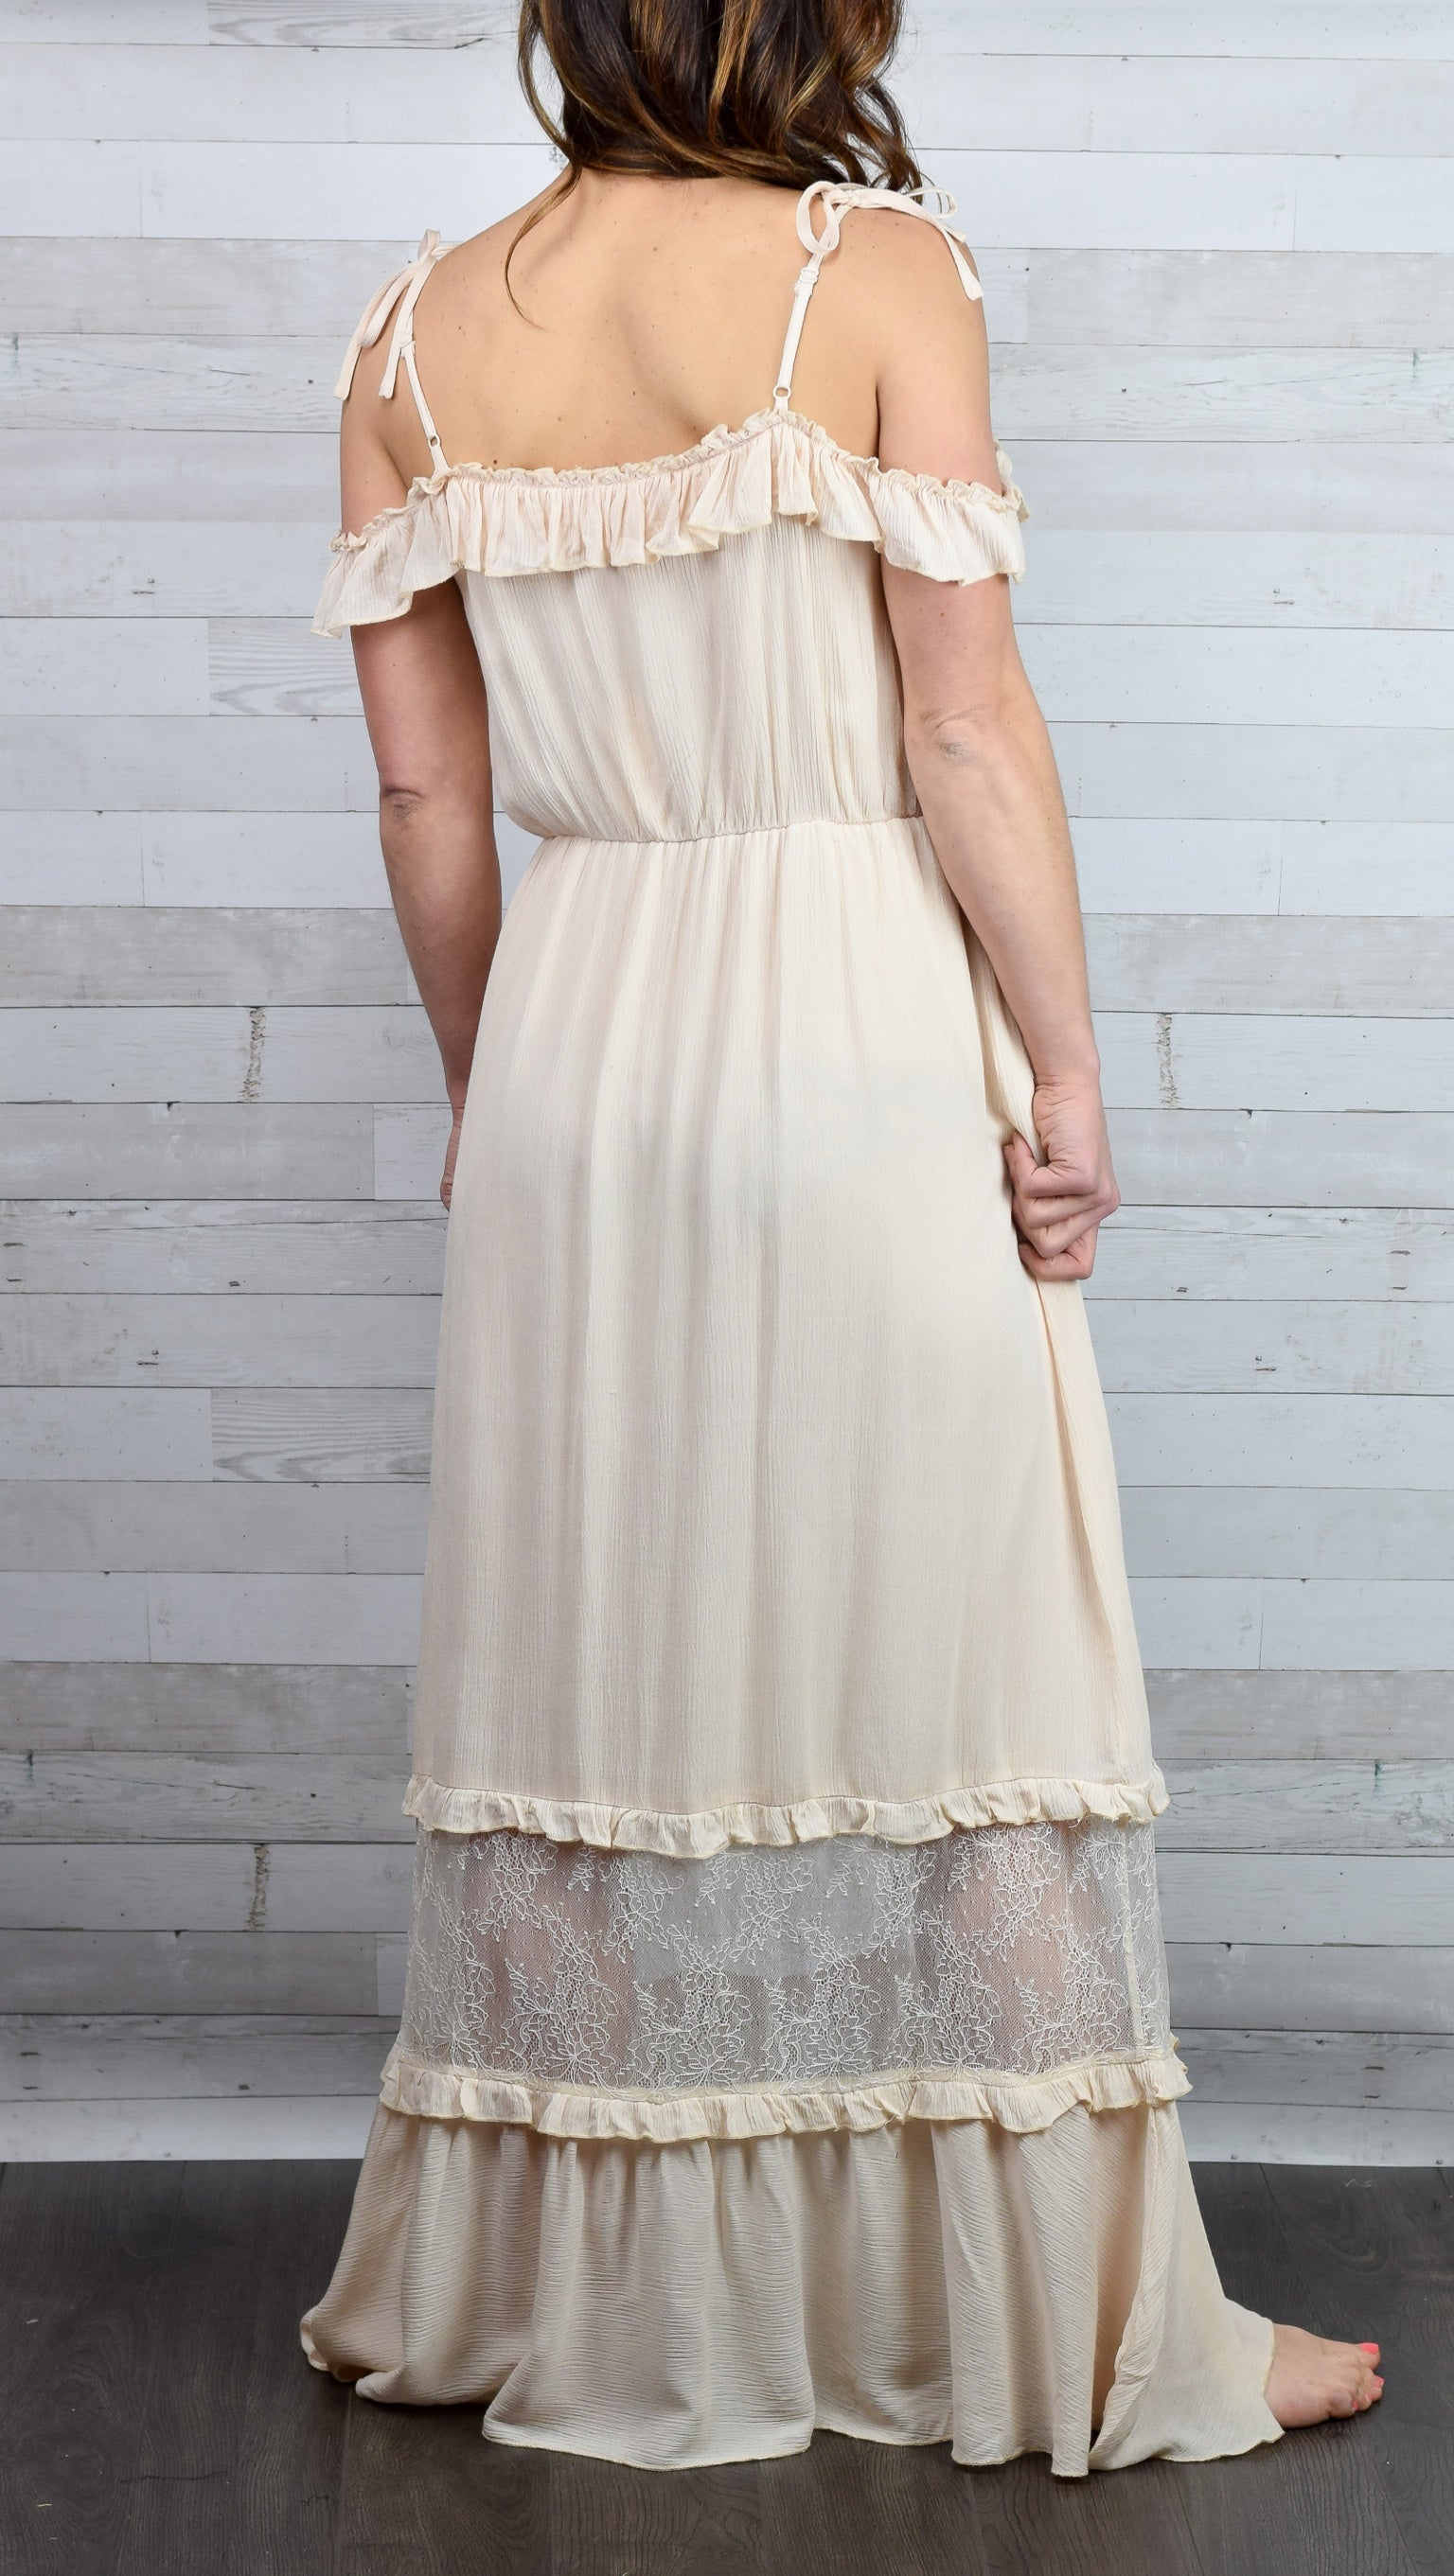 Sincerely Yours Cream Lace Dress